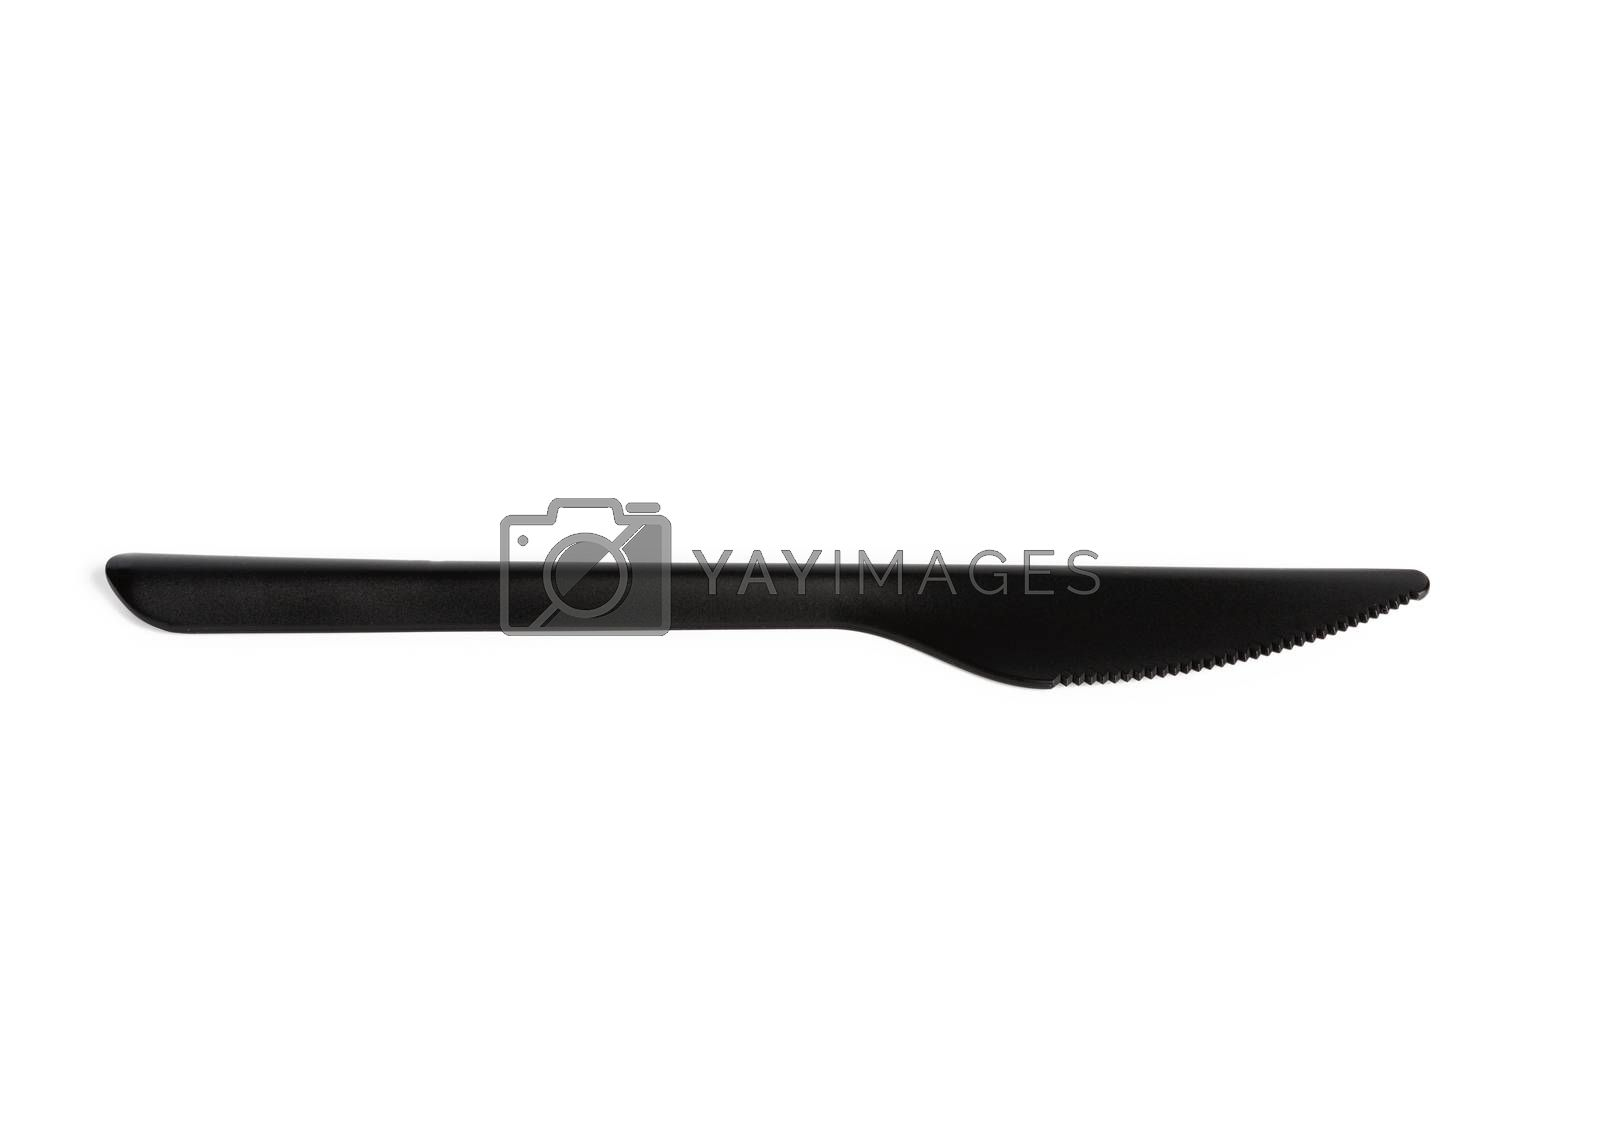 disposable black plastic knife isolated on white background, close up